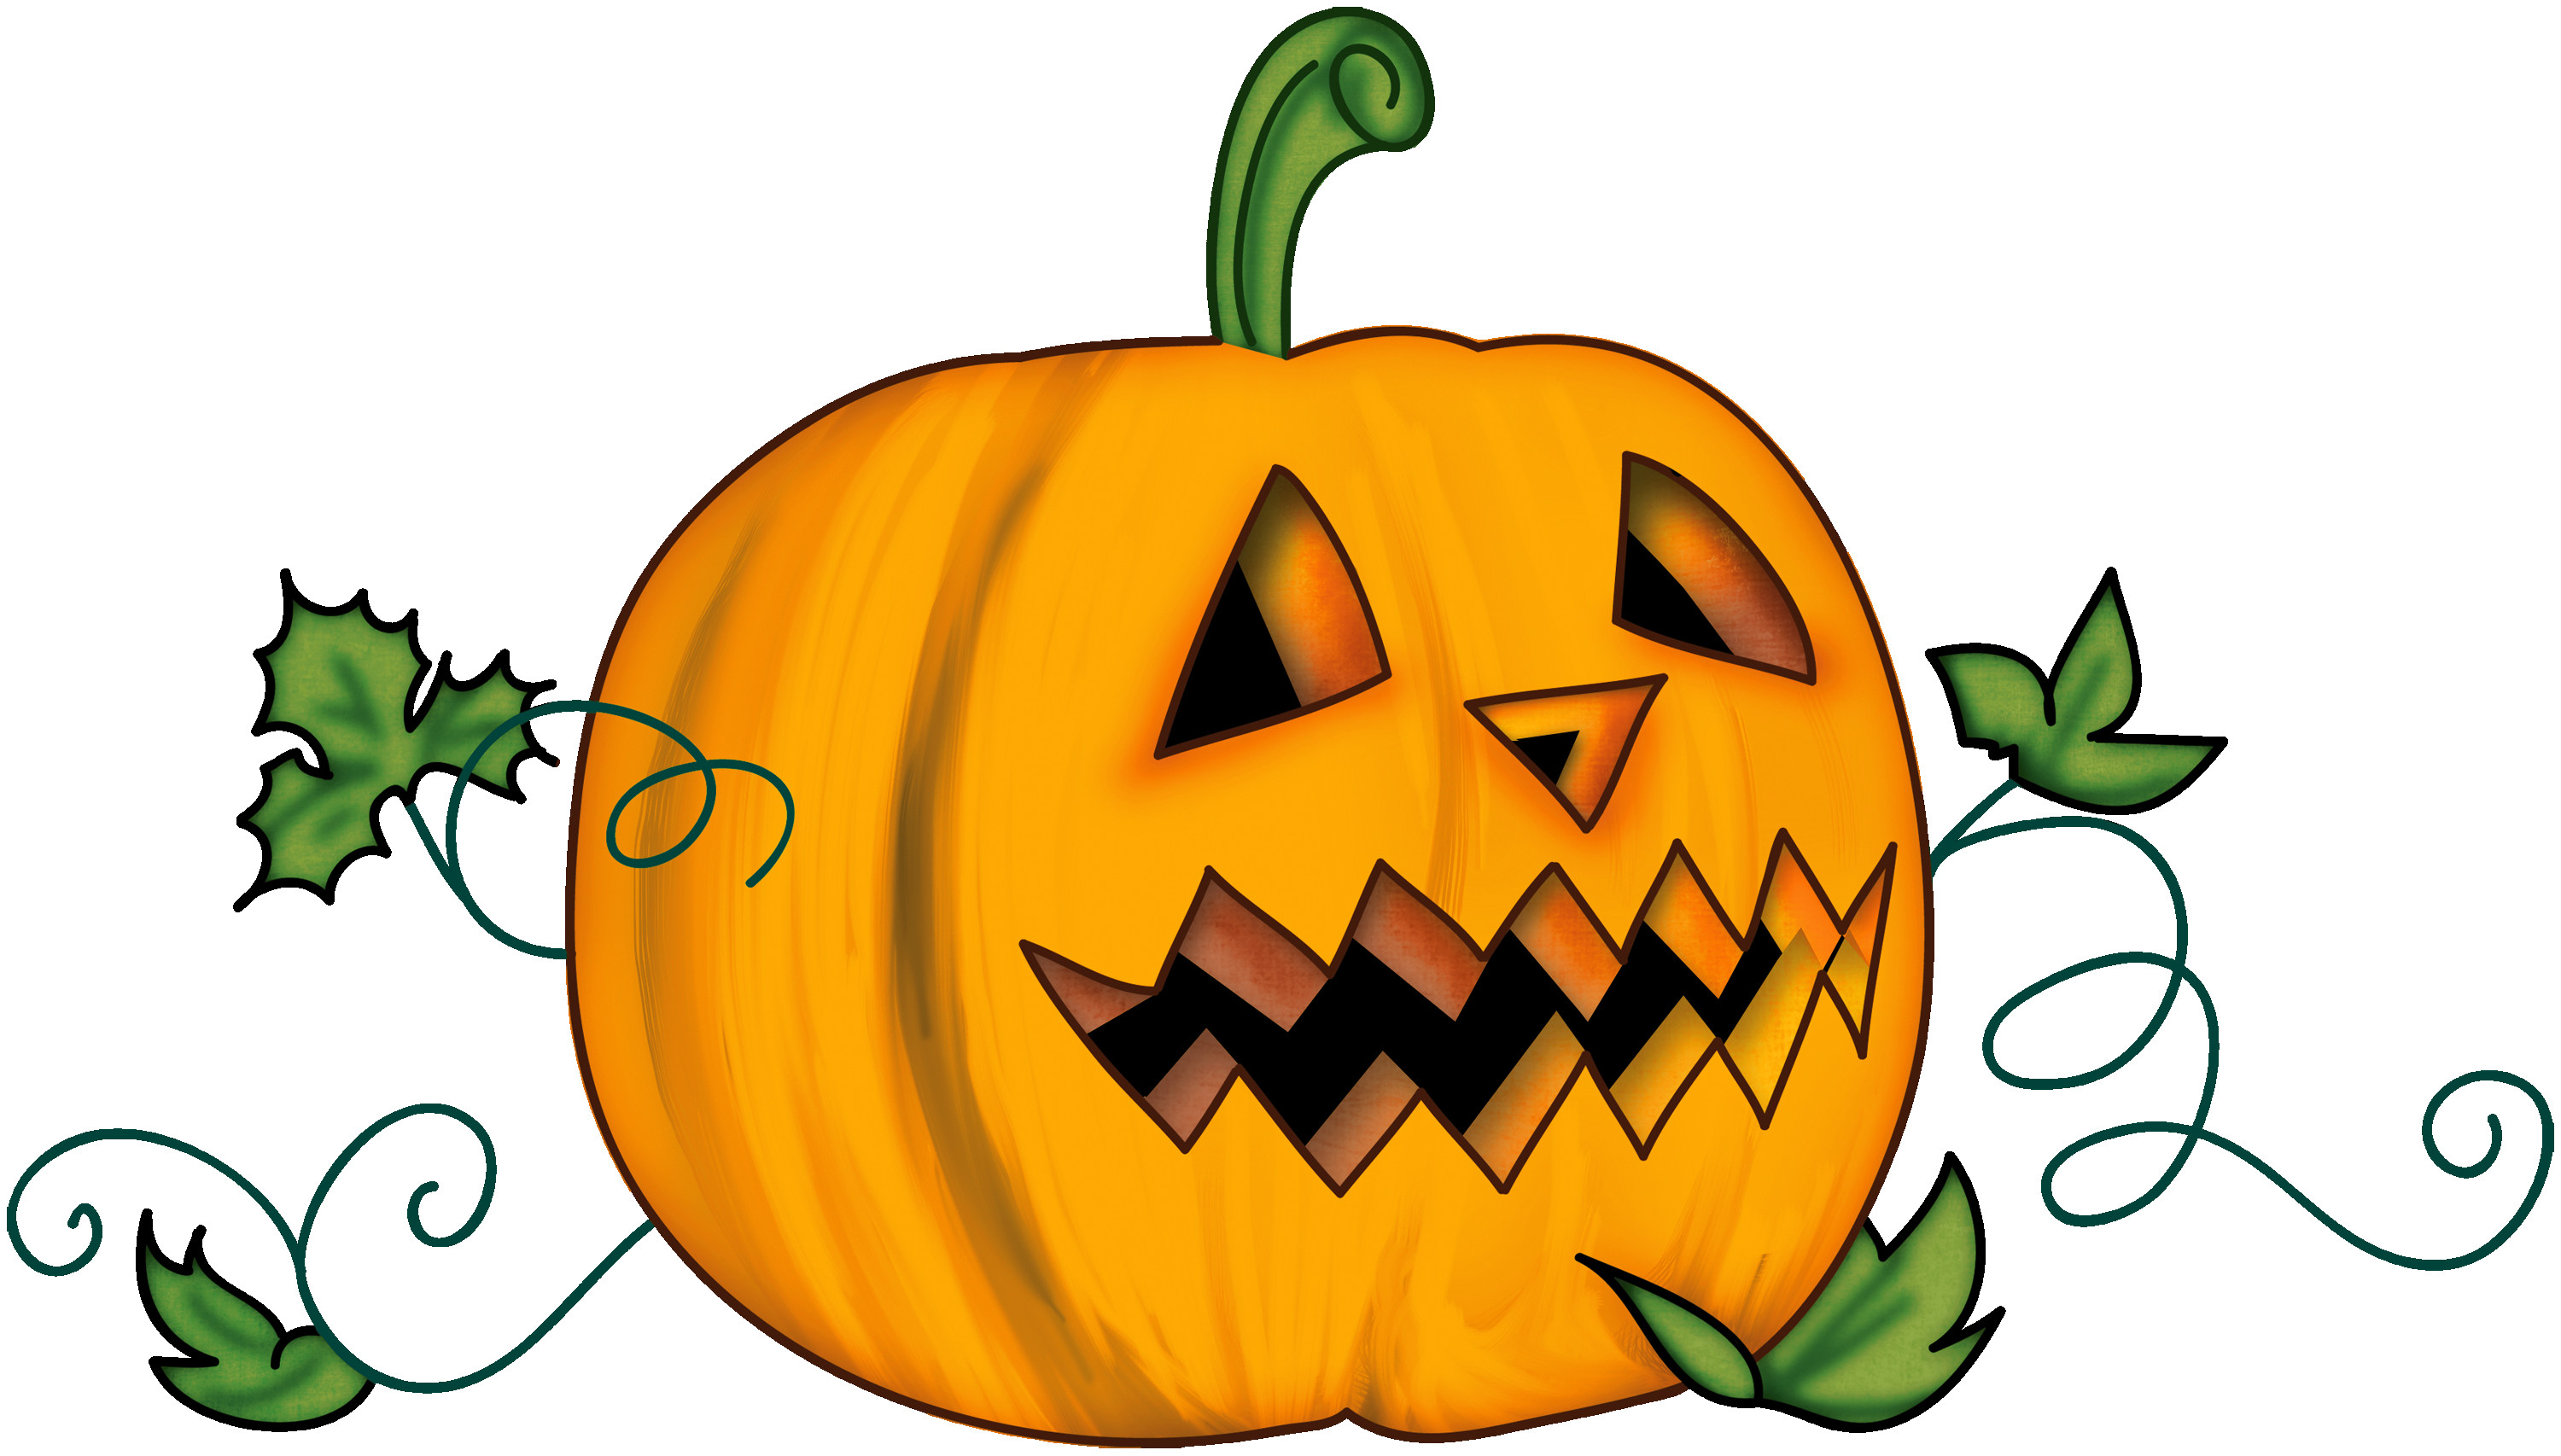 fall and halloween clipart at getdrawings com free for personal